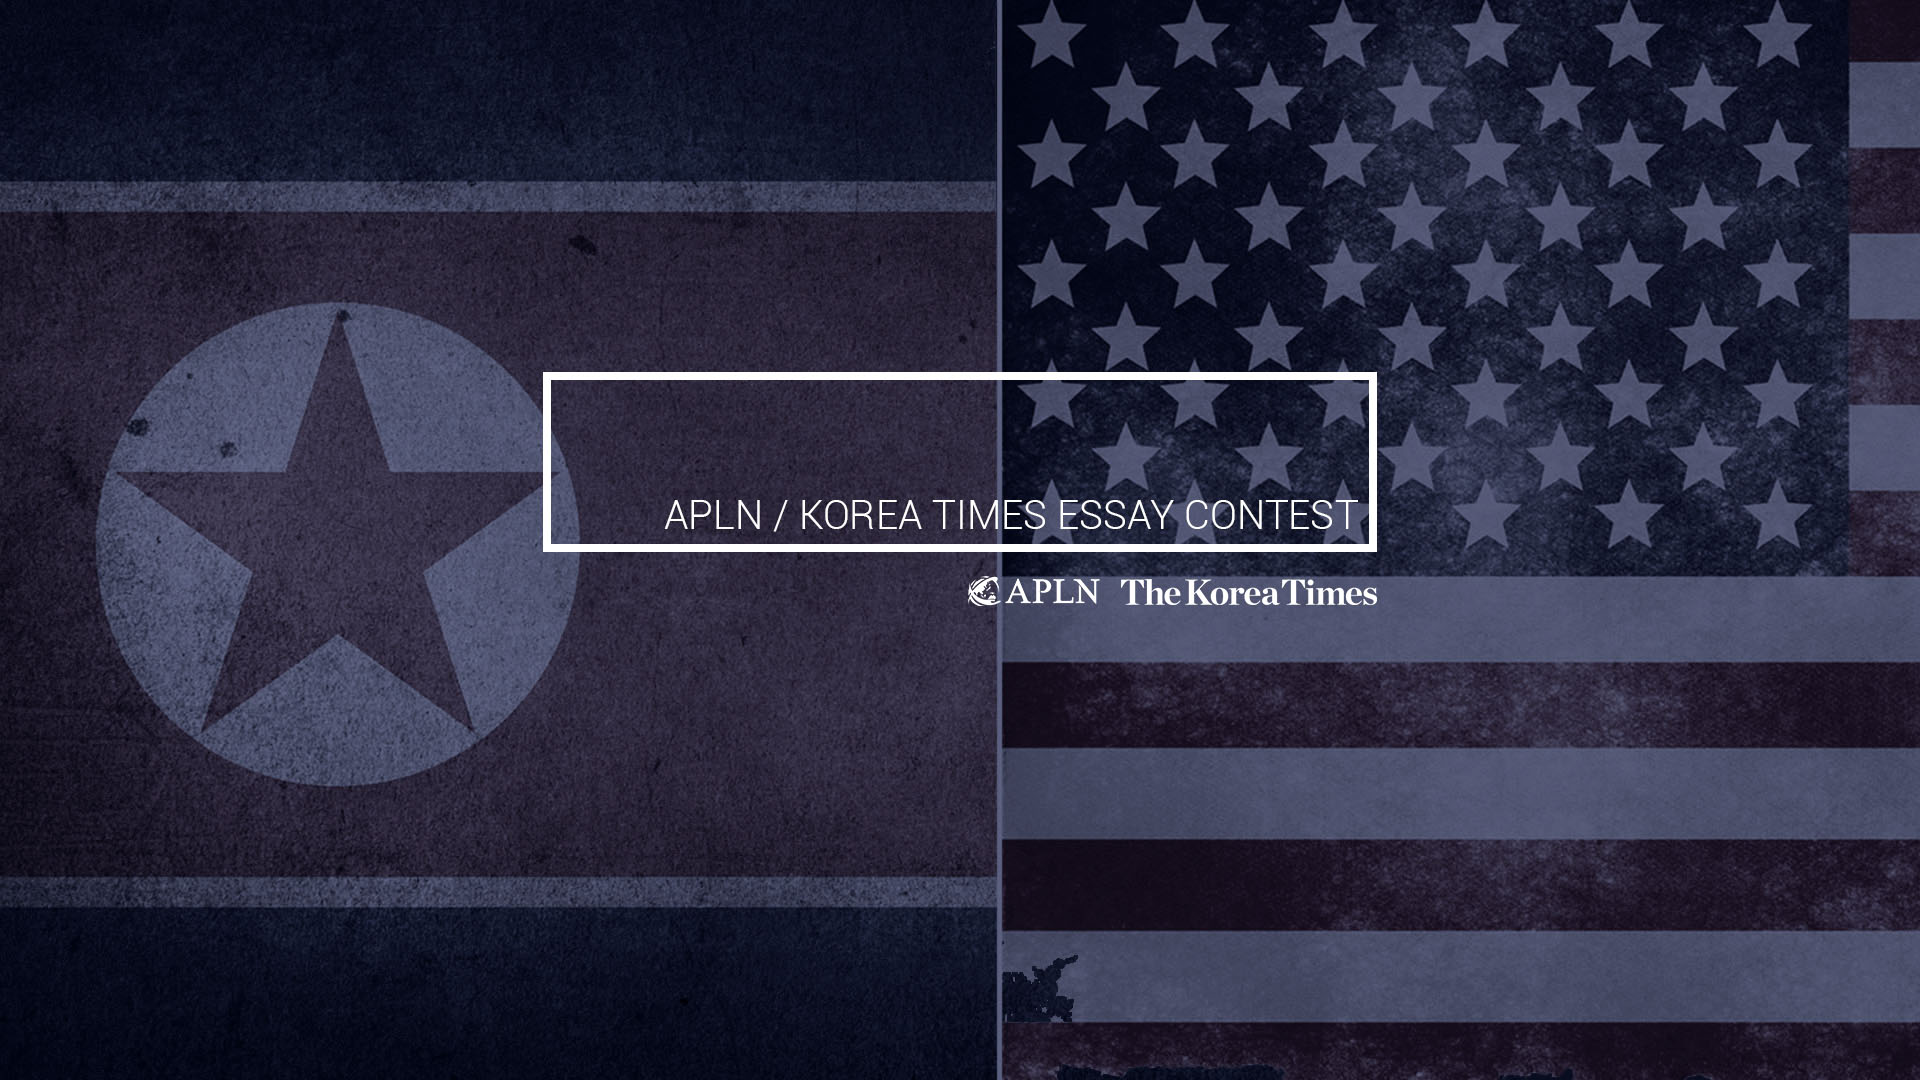 The Dangerous Game Between the DPRK and USA